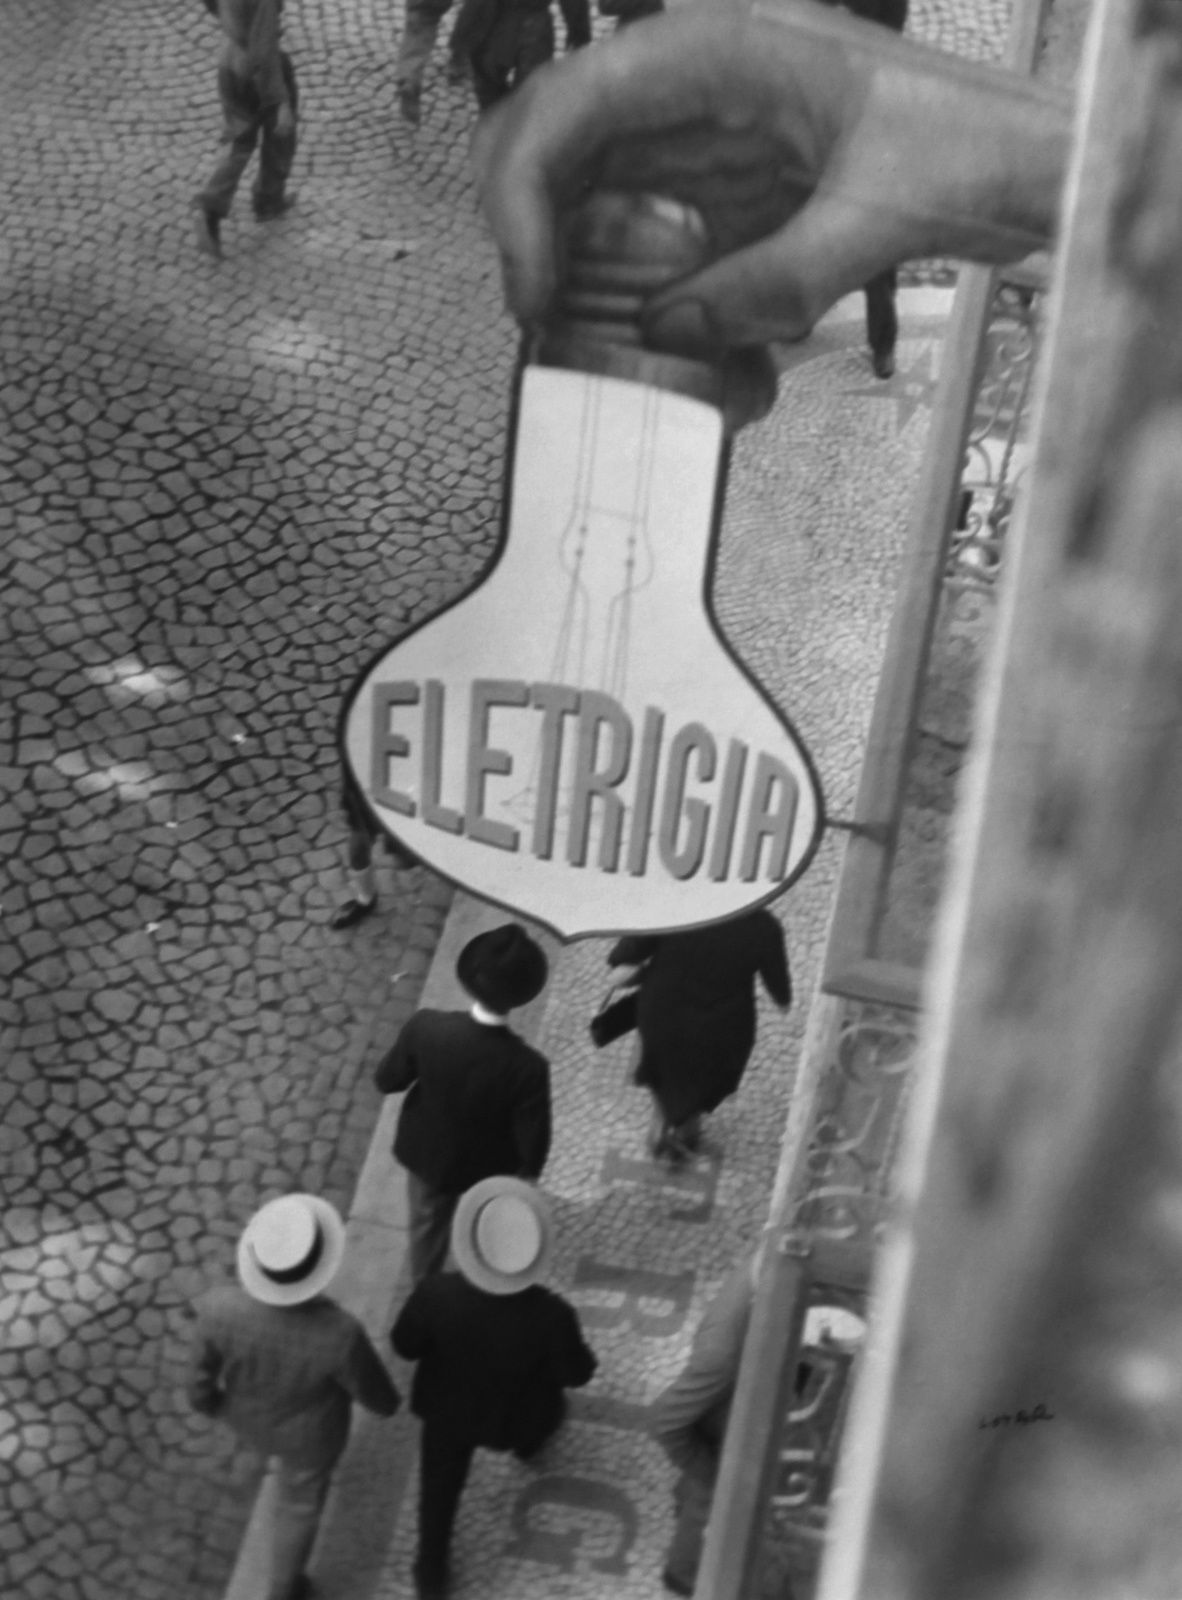 """Sans titre (Lisbonne)"", 1931 de Eli LOTAR - Courtesy Centre Pompidou, Paris © Photo Éric Simon"